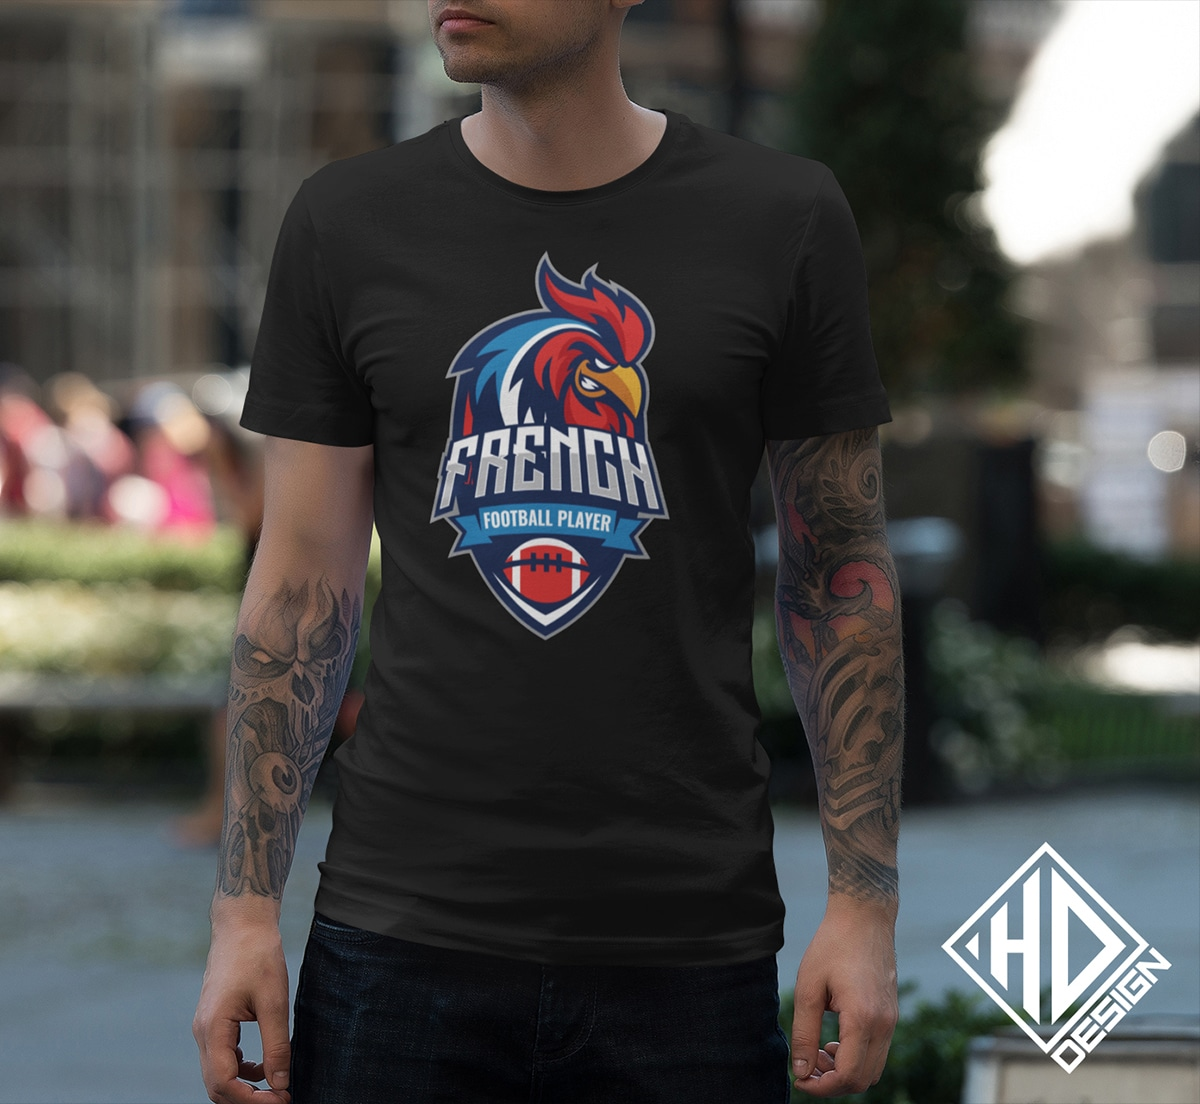 tee-mockup-featuring-a-man-with-tattooed-arms-on-the-street-3362-el1-2